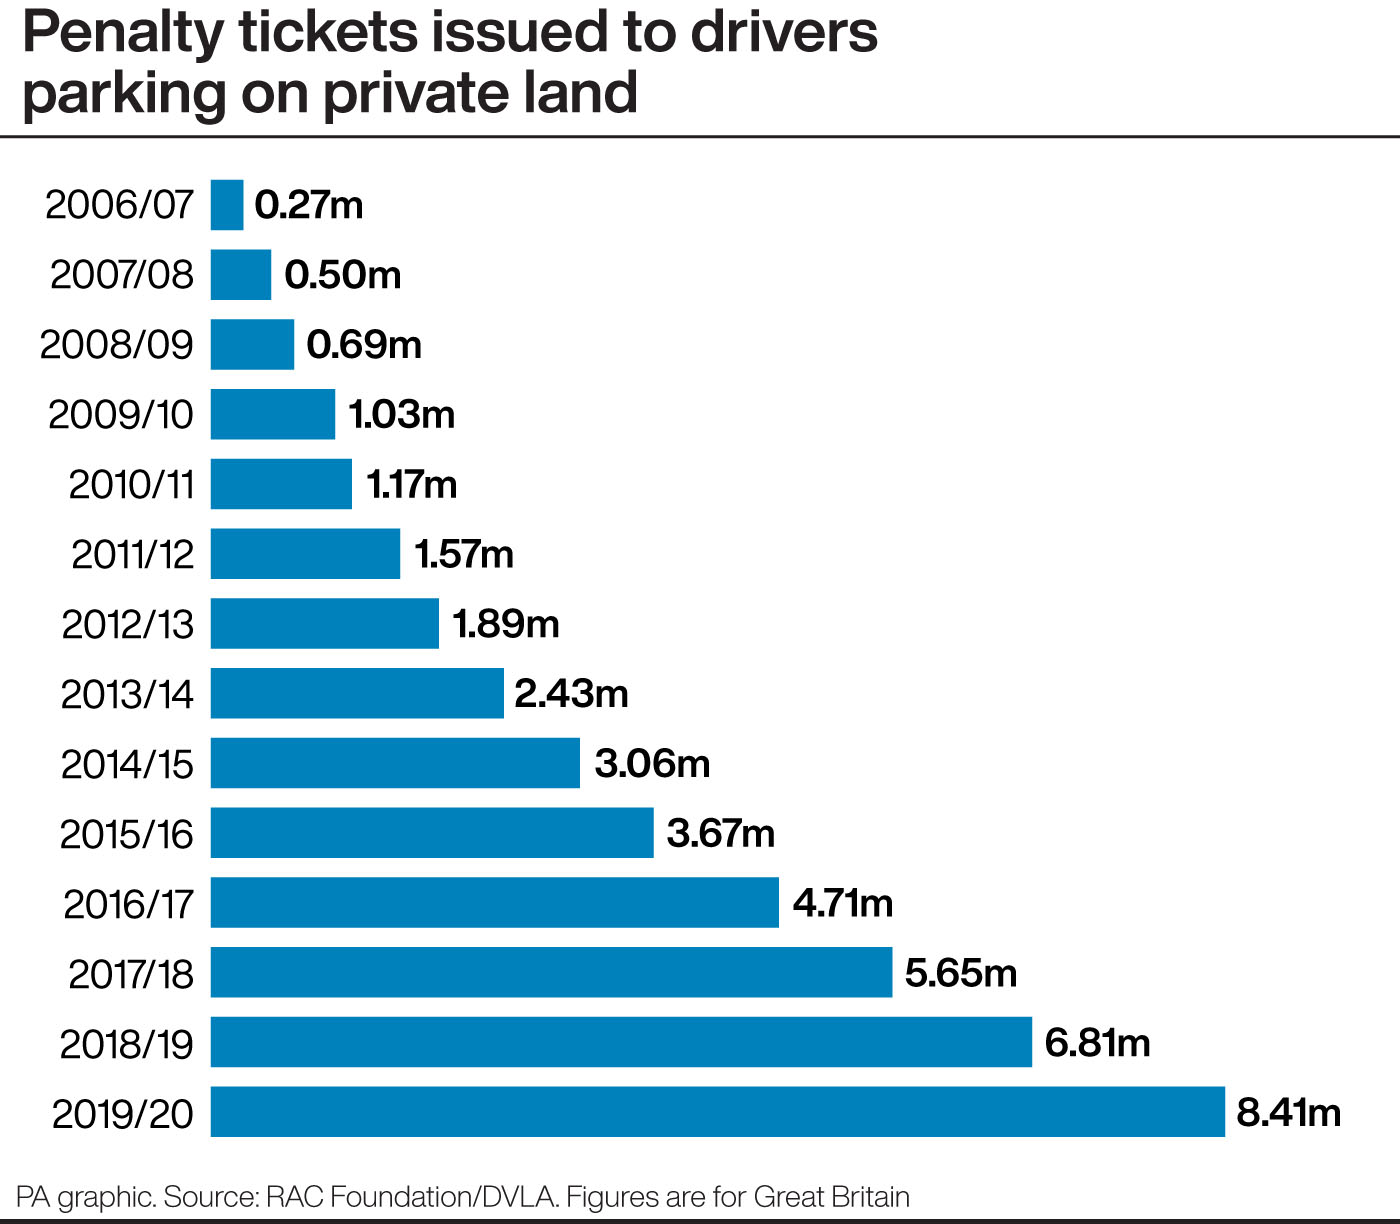 Penalty tickets issued to drivers parking on private land